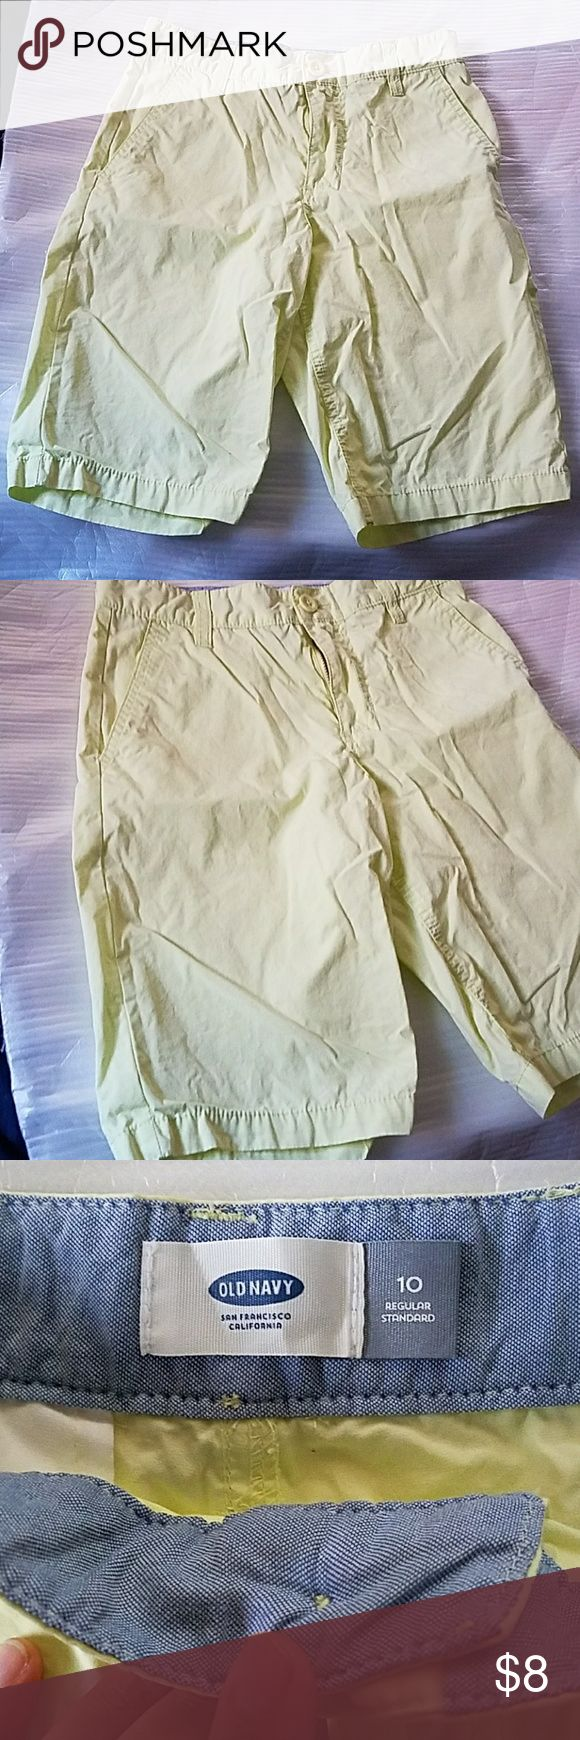 Old Navy Lime green shorts Old Navy Lime green shorts   Size 10  Adjustable waist  Used but look New  I do bundle and offers are welcome Old Navy Bottoms Shorts